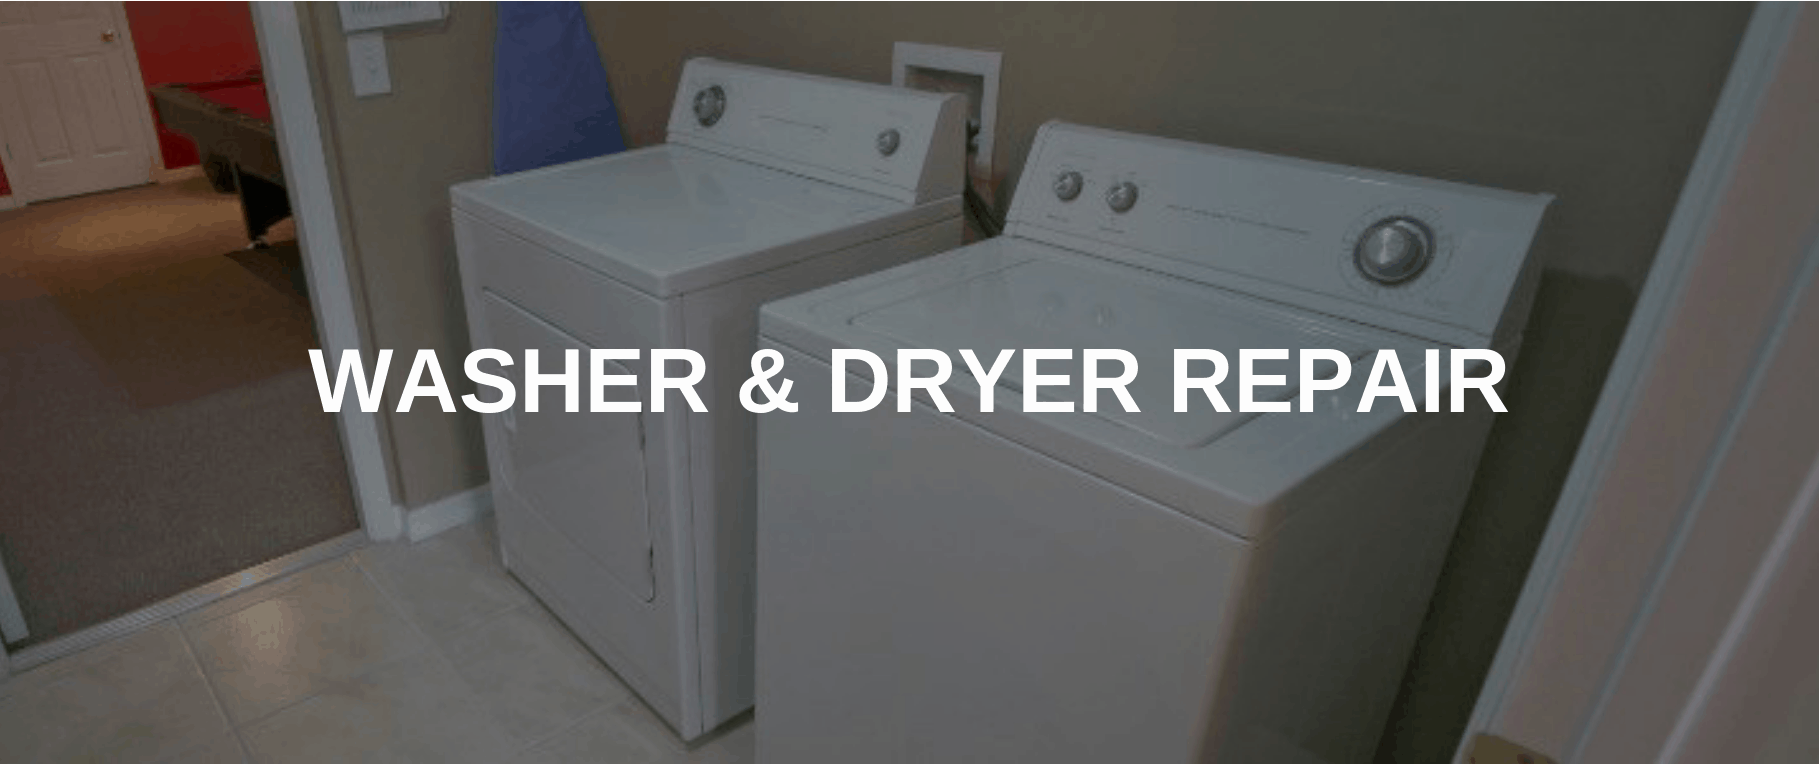 washing machine repair worcester